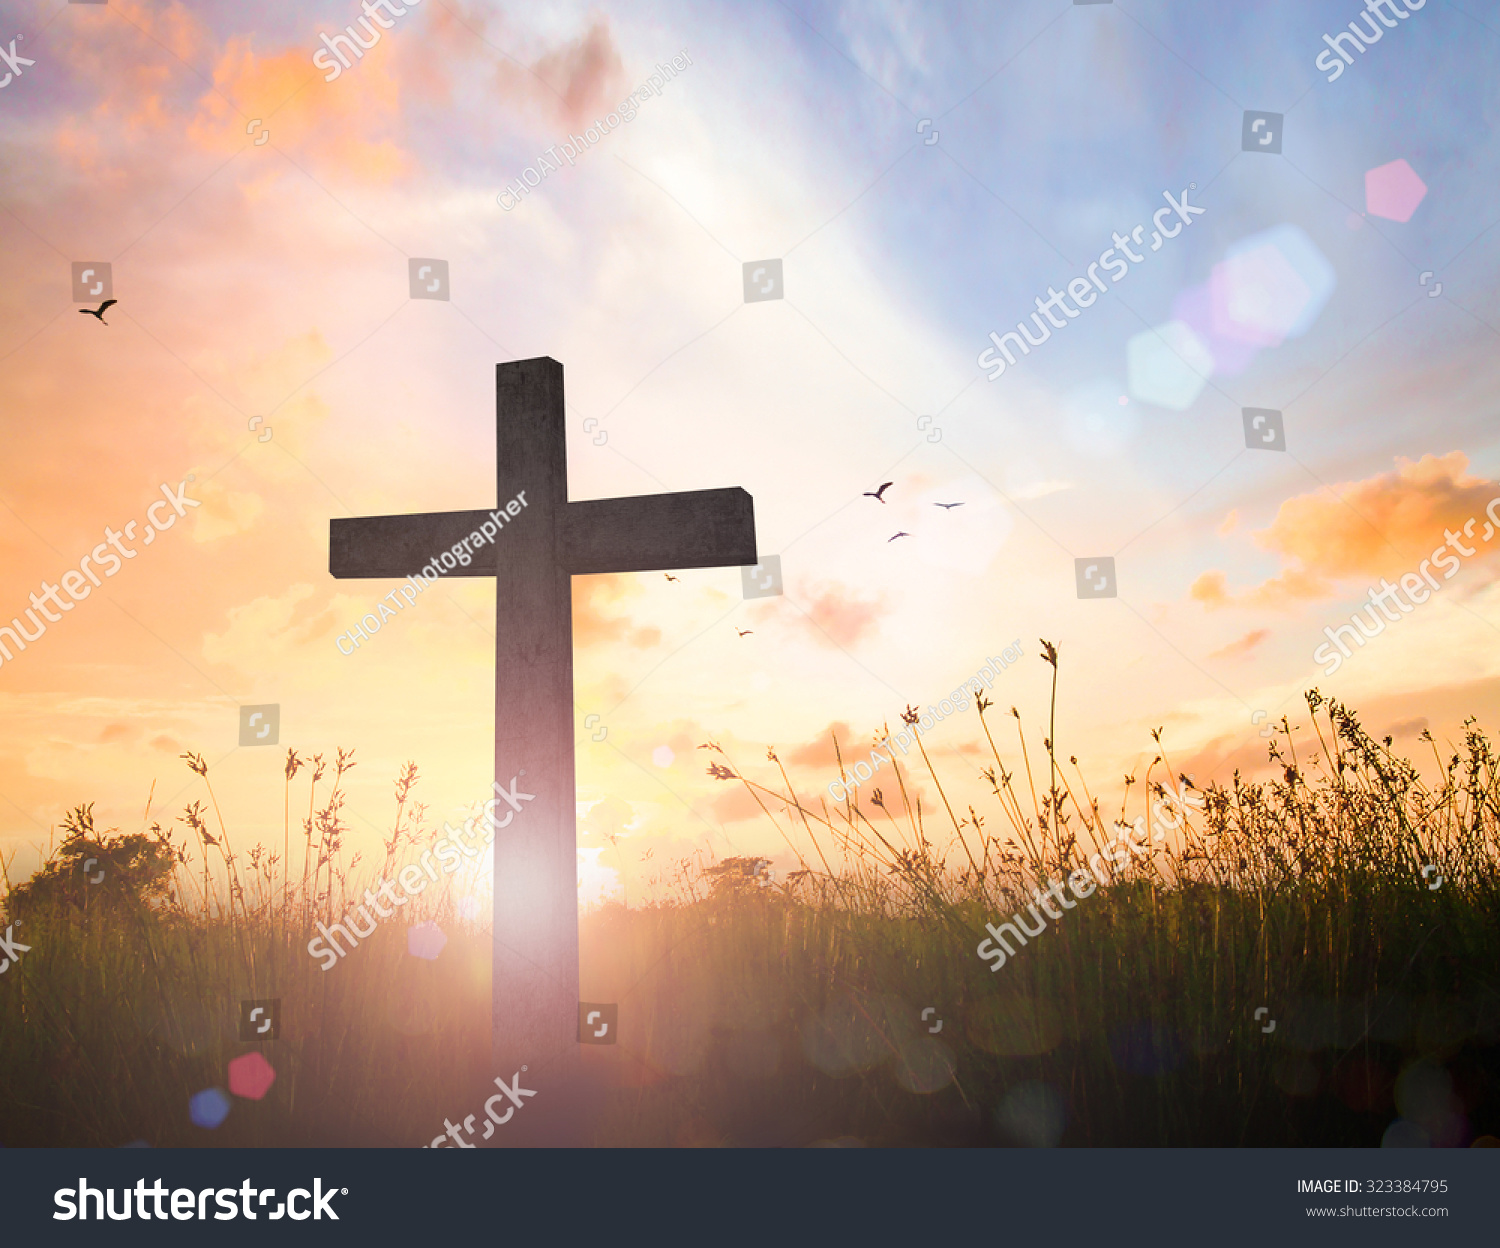 background image church office cross symbol stock photo 323384795